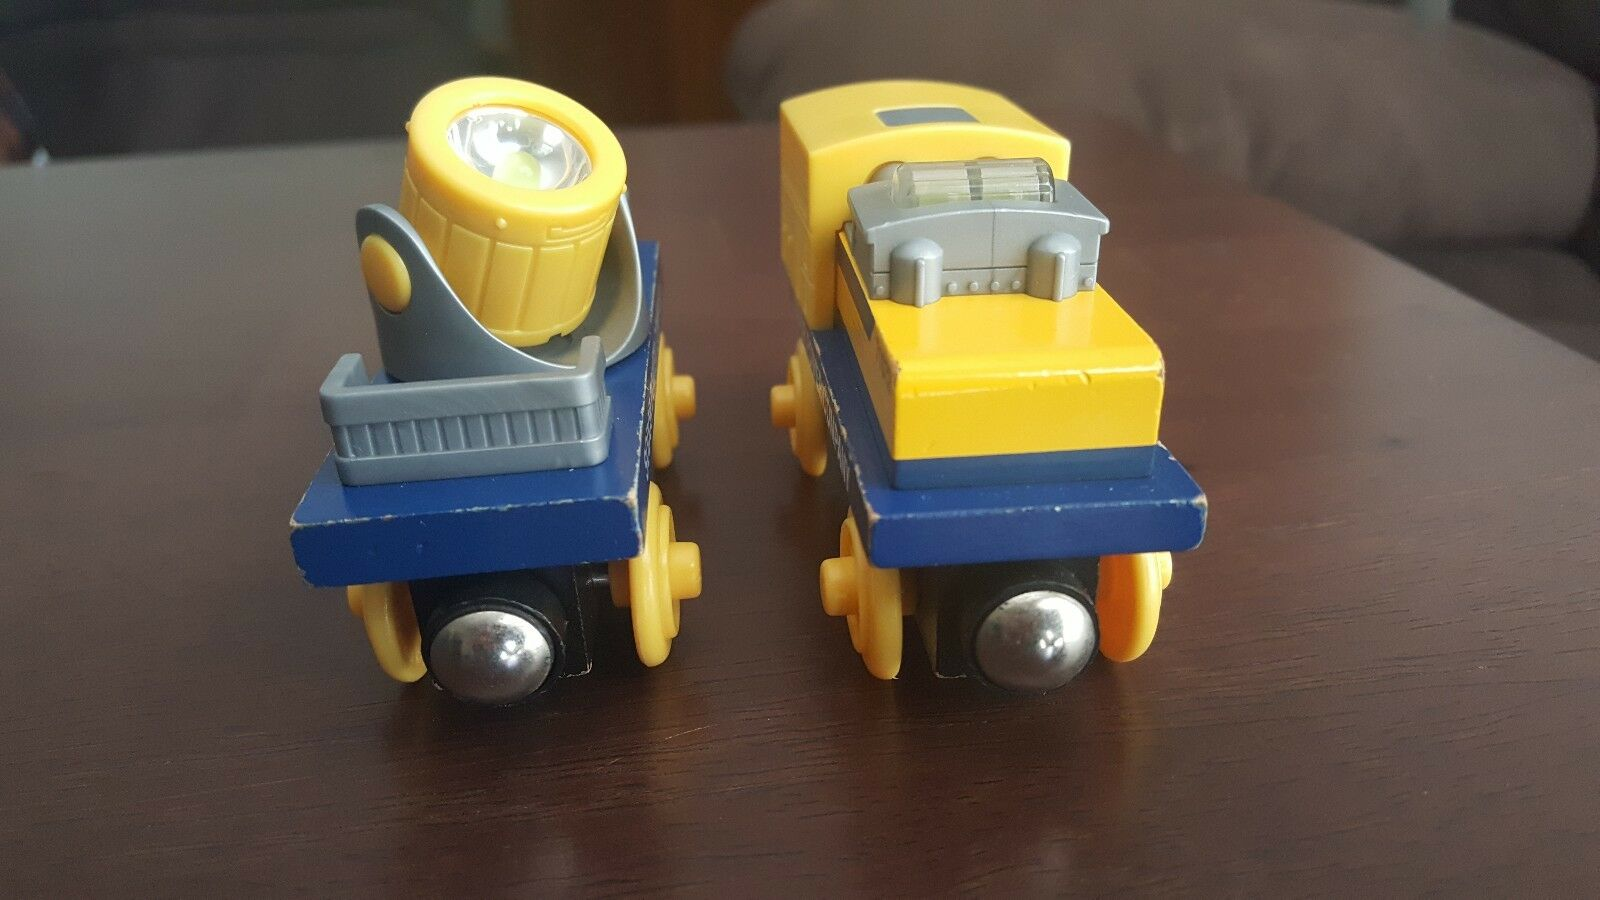 Thomas Wooden Railway Sodor Power Company with with with Working Emergency Lights e59607